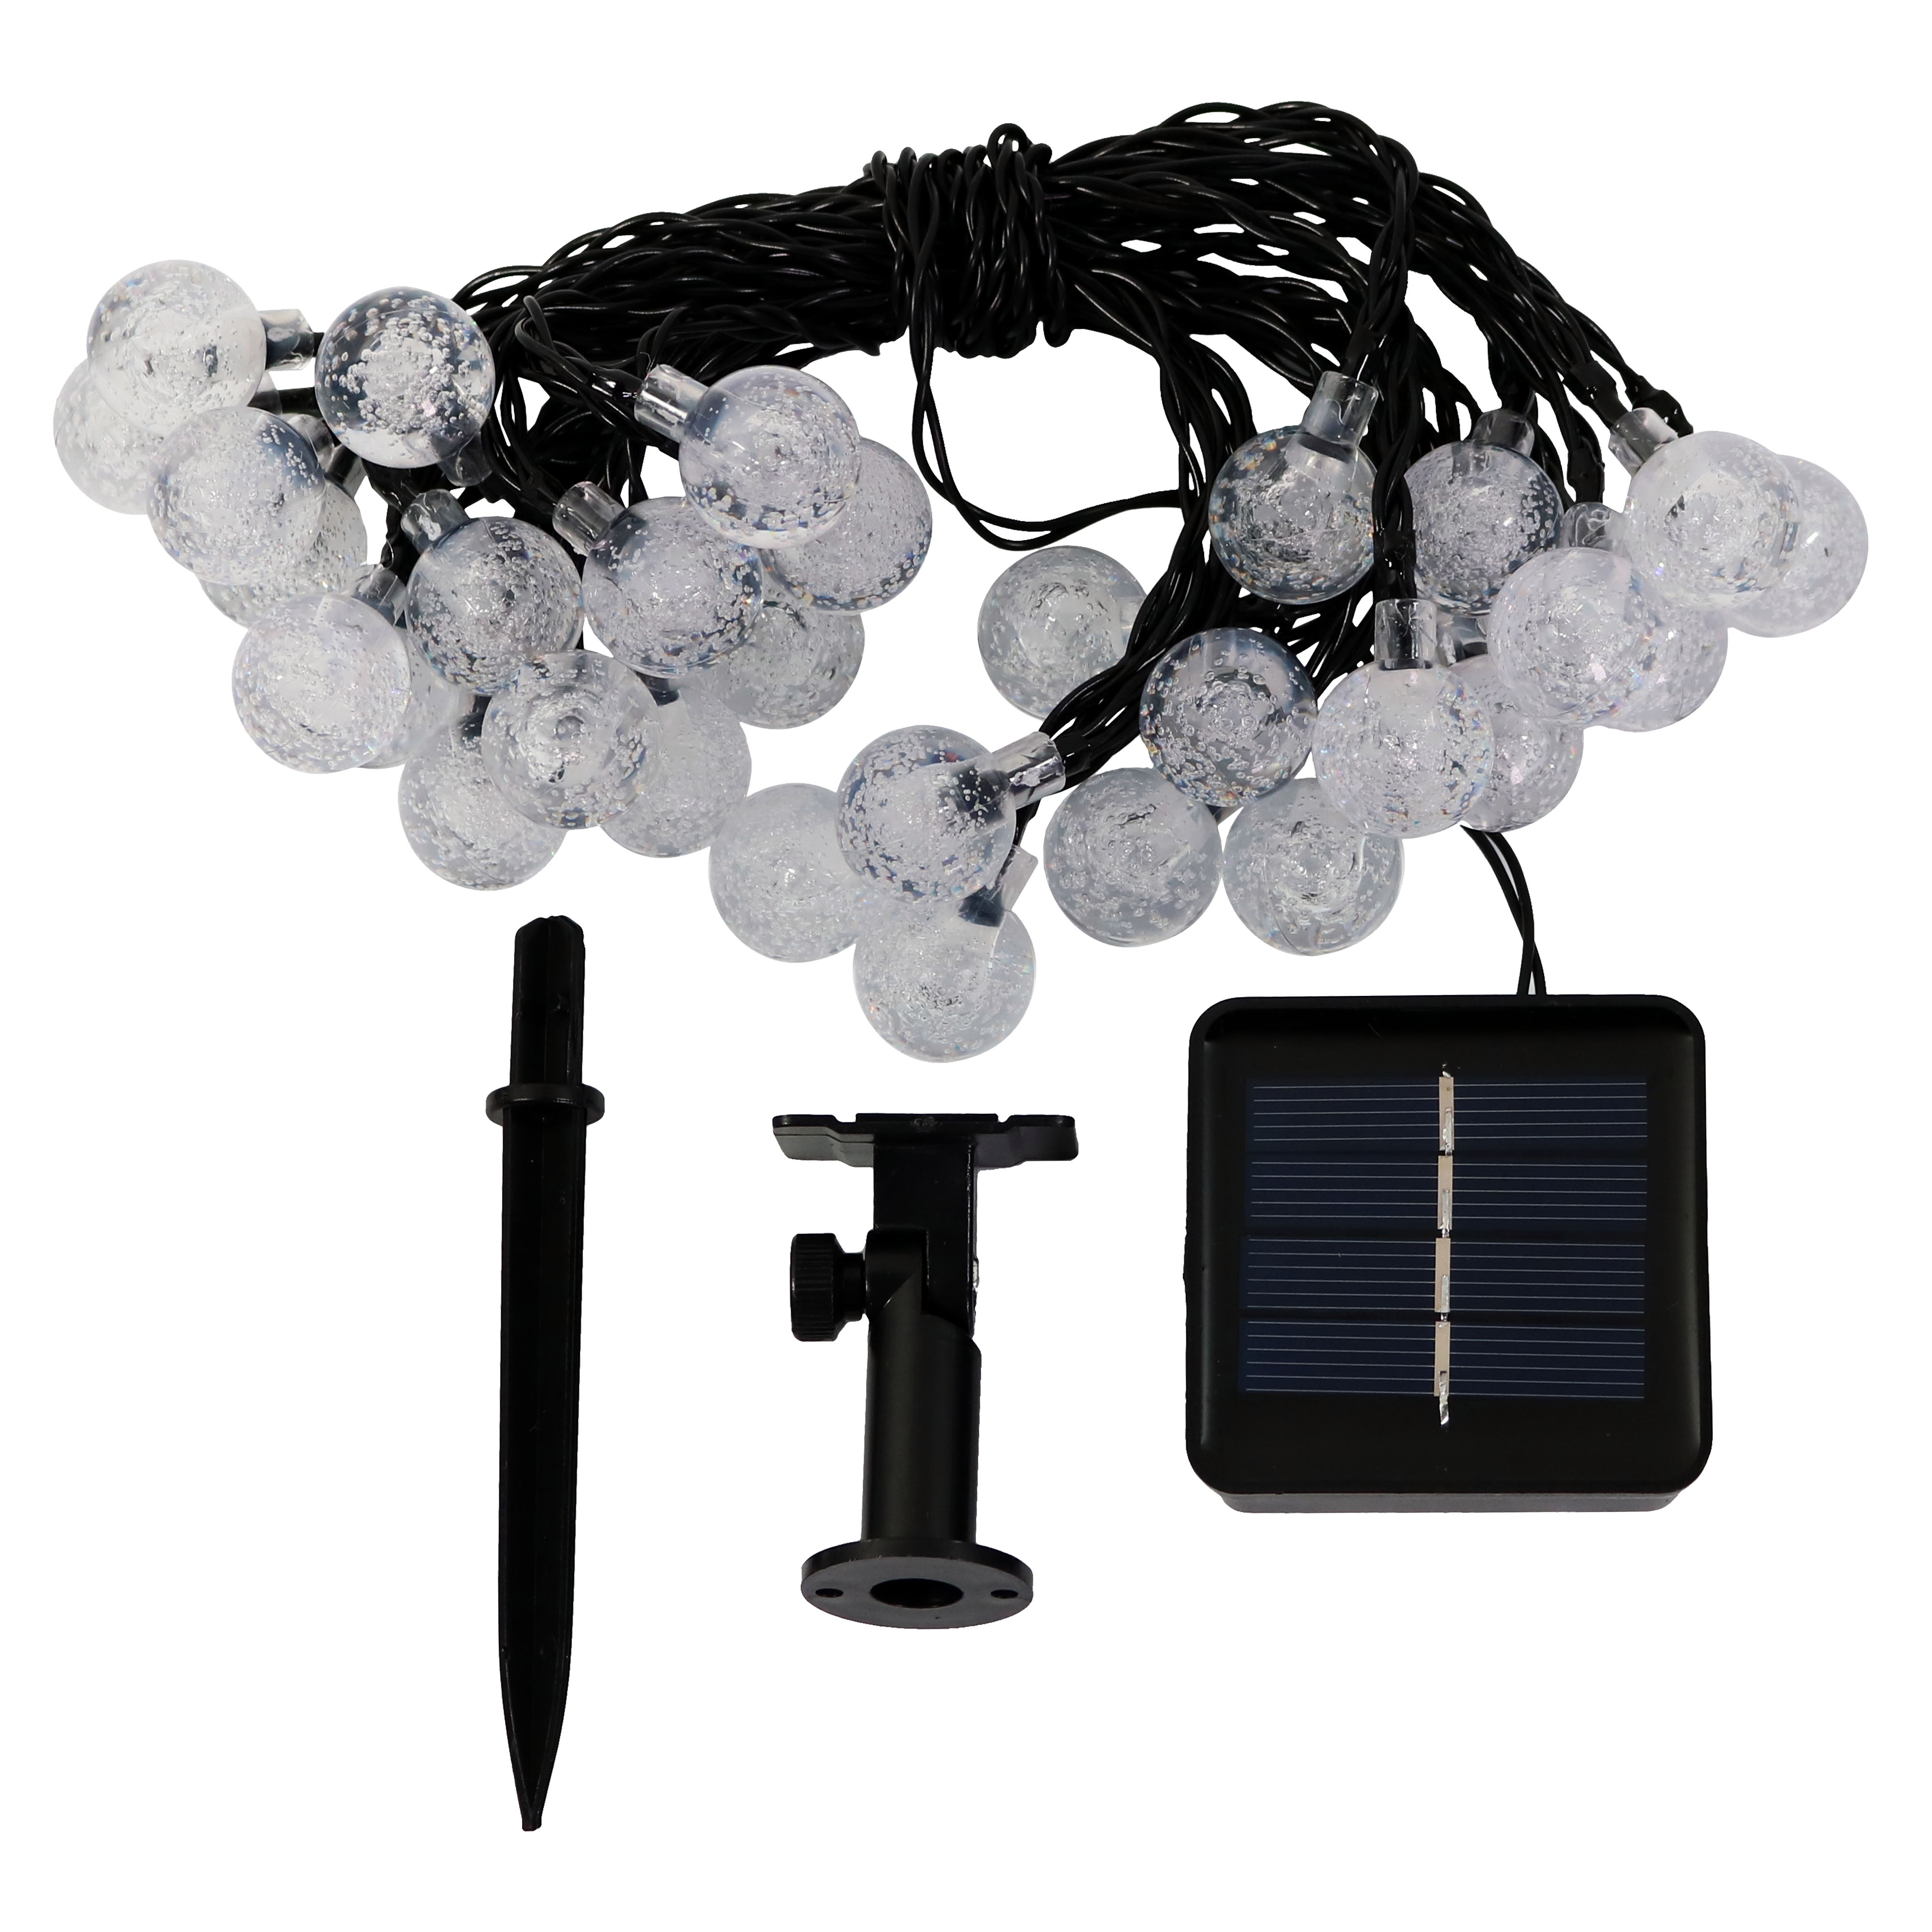 Colored String Lights For Patio : Sunnydaze Solar Powered 30 Count Patio Globe String Lights - Multiple Colors eBay